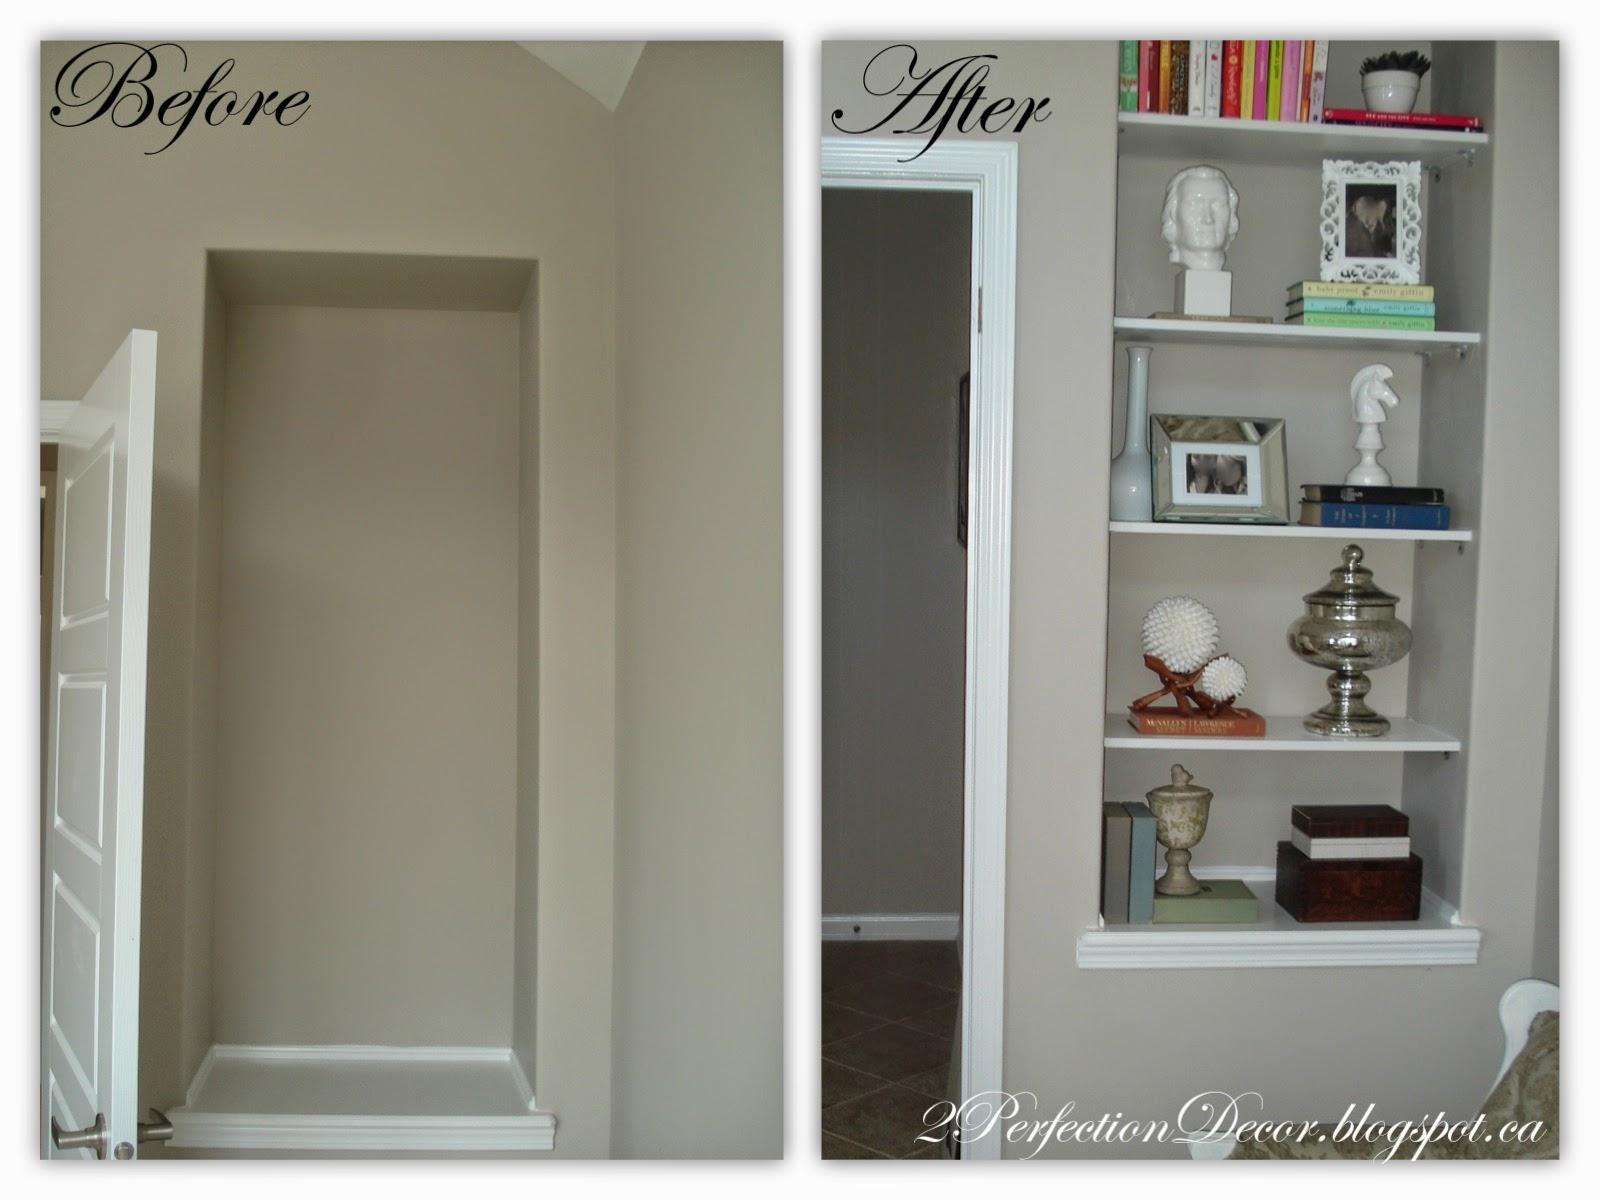 Built In Drywall Shelves 2perfection Decor Drywall Picture Niche Turned Into Diy Shelving